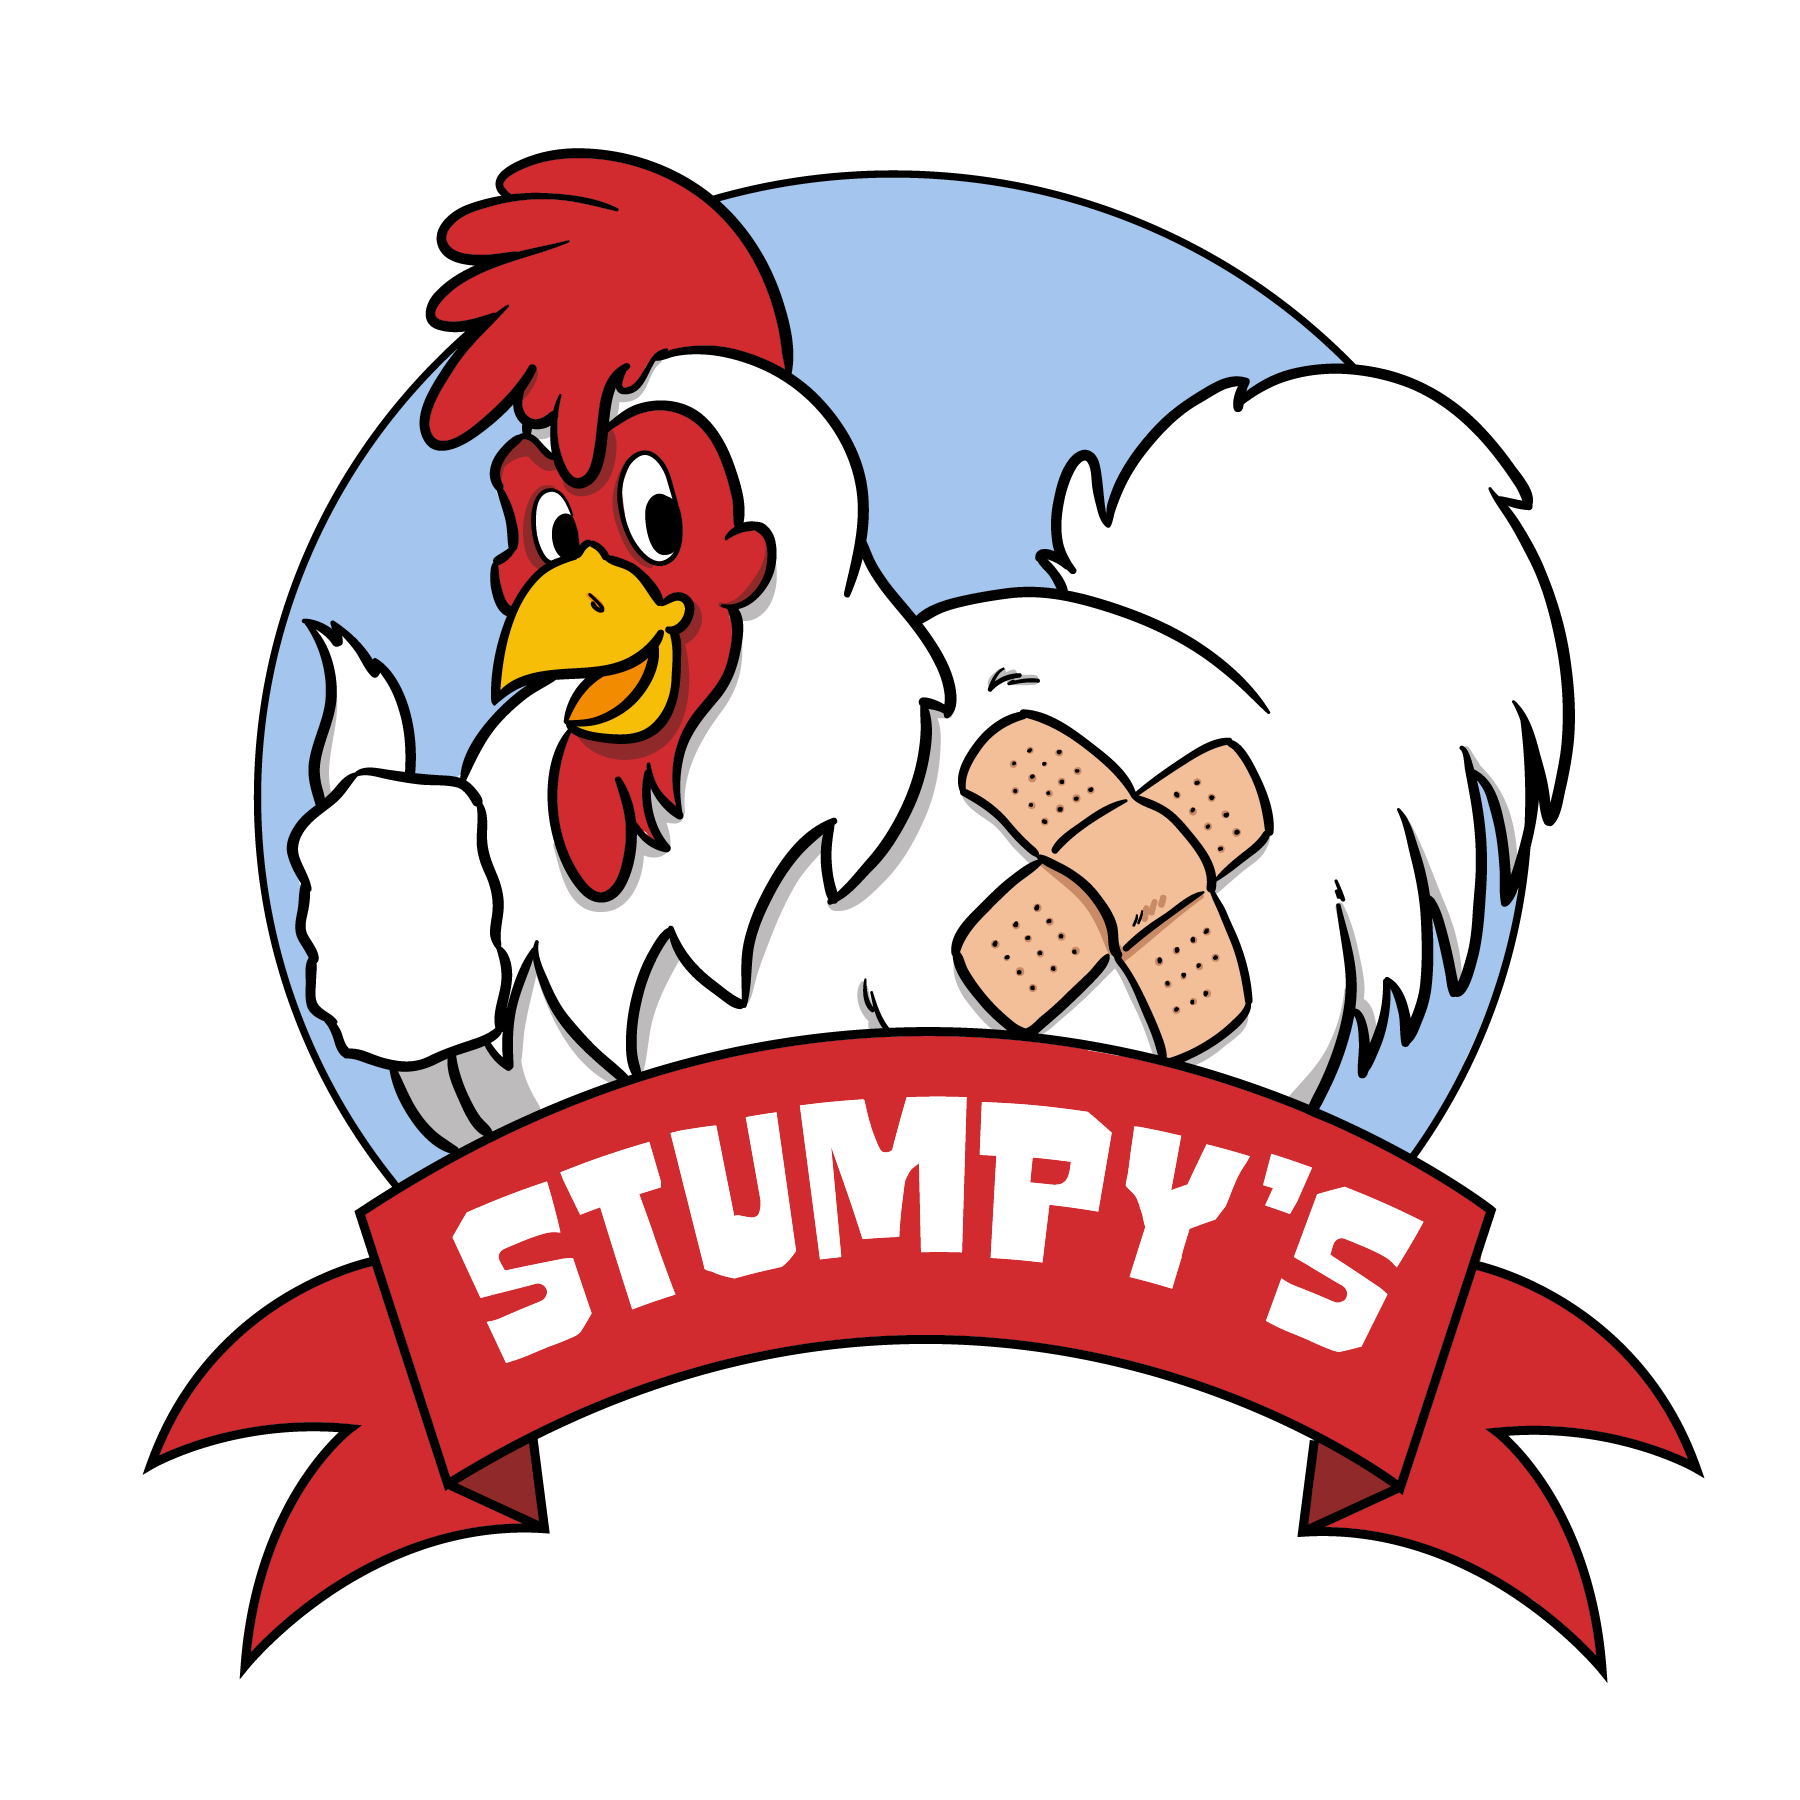 Stumpy's Wing House   Stumpy's is a wing and barbecue restaurant with great food and a good sense of humor.